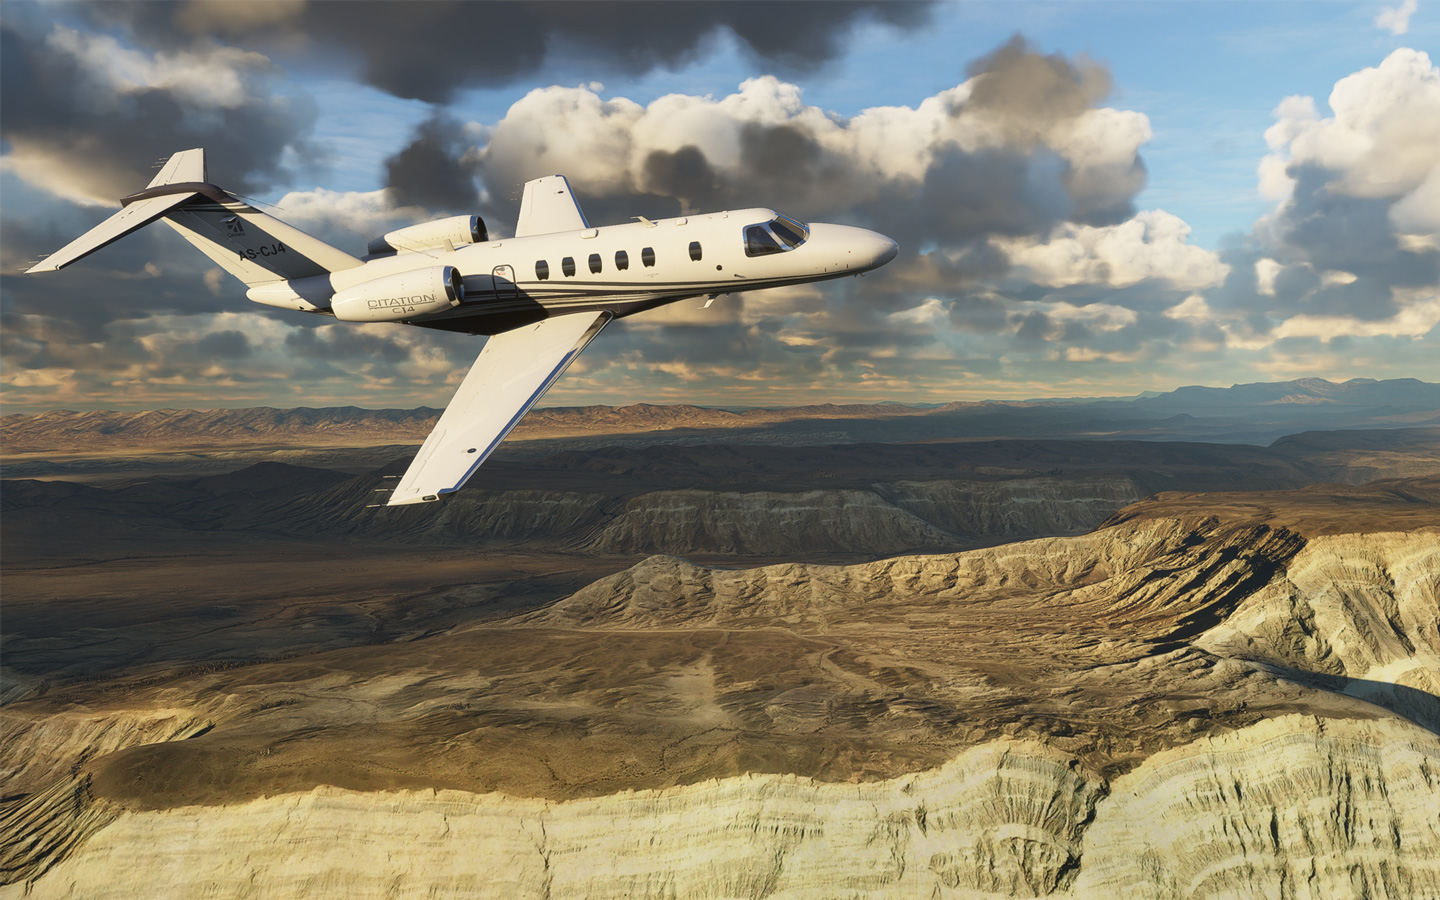 Free Microsoft Flight Simulator (2020) Wallpaper in 1440x900